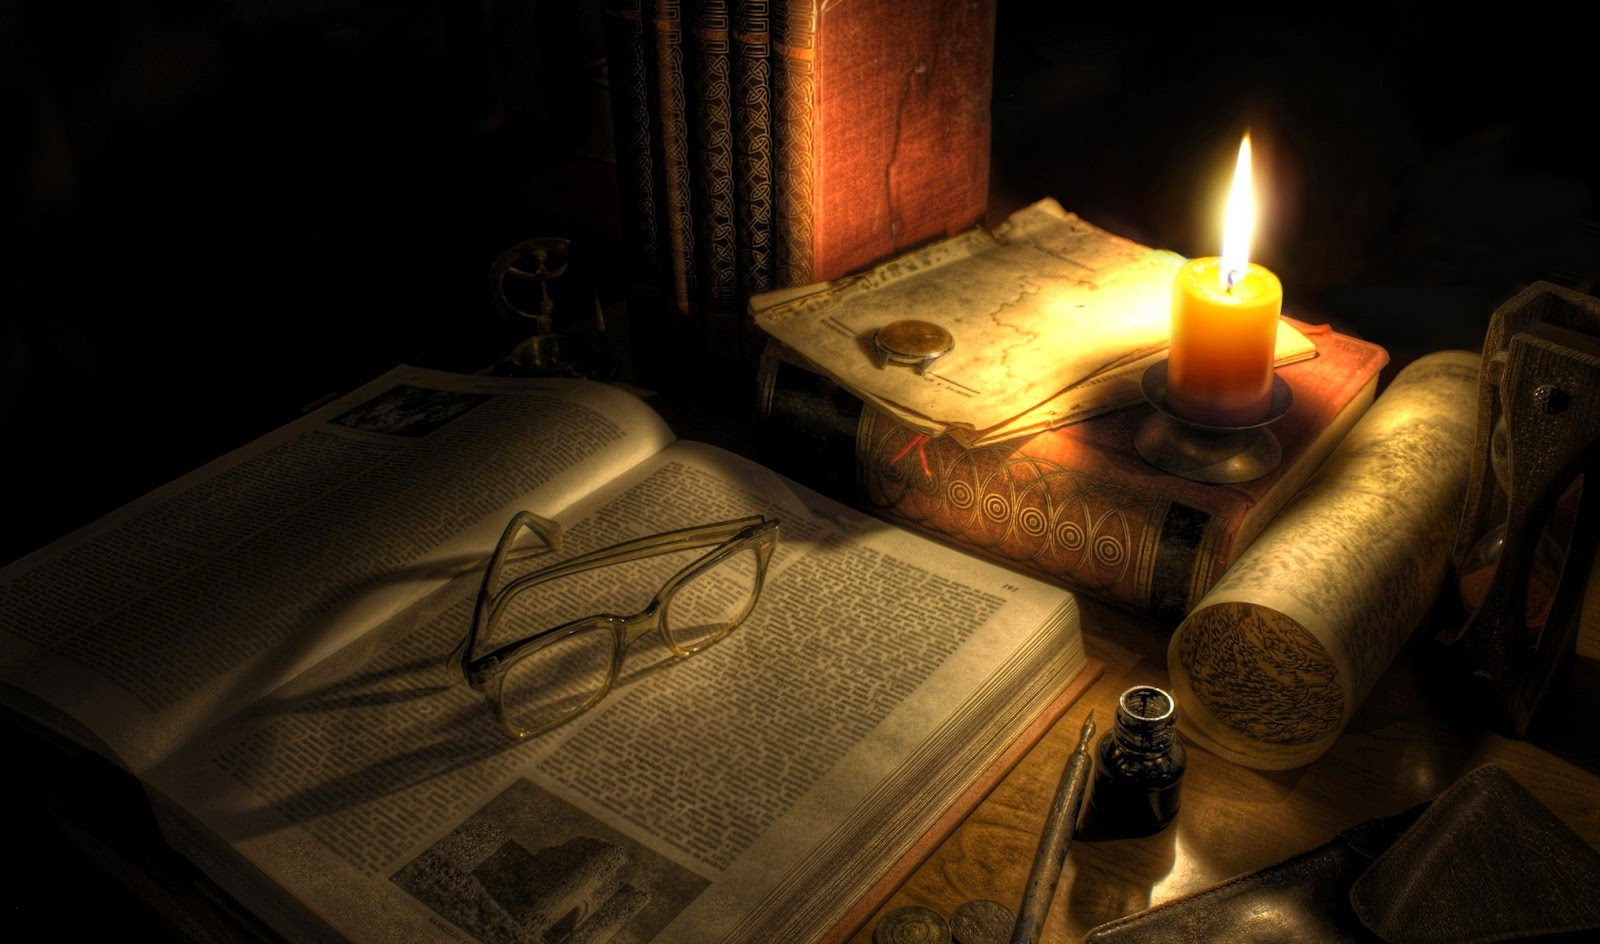 lore books and candles